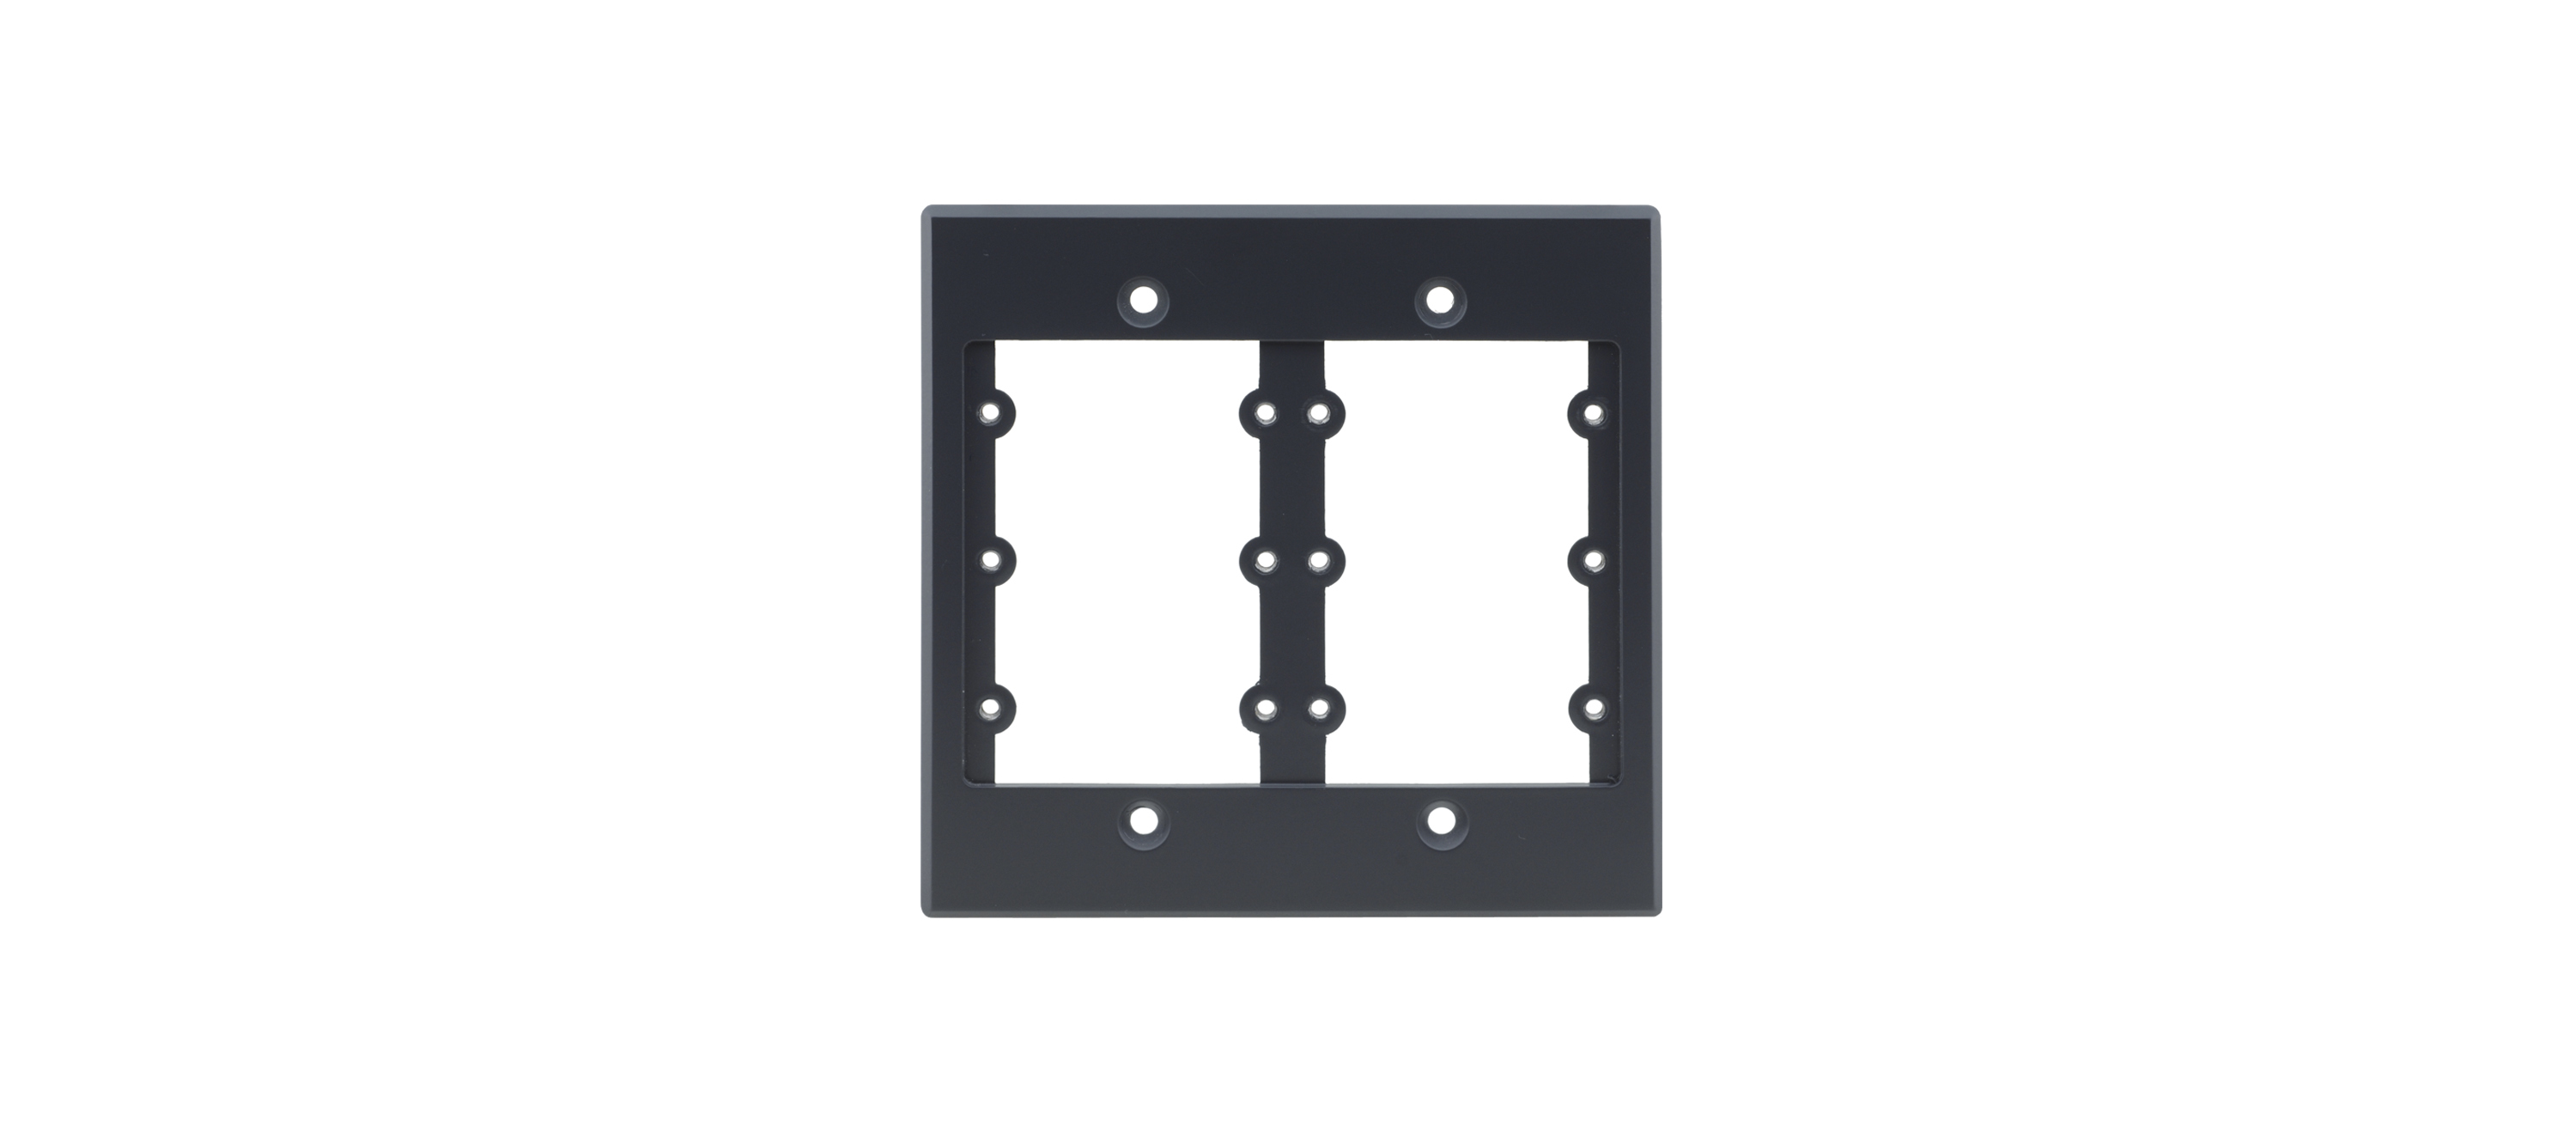 2GANG FRAME HOLDS 6WALL PLATE INSERTS.